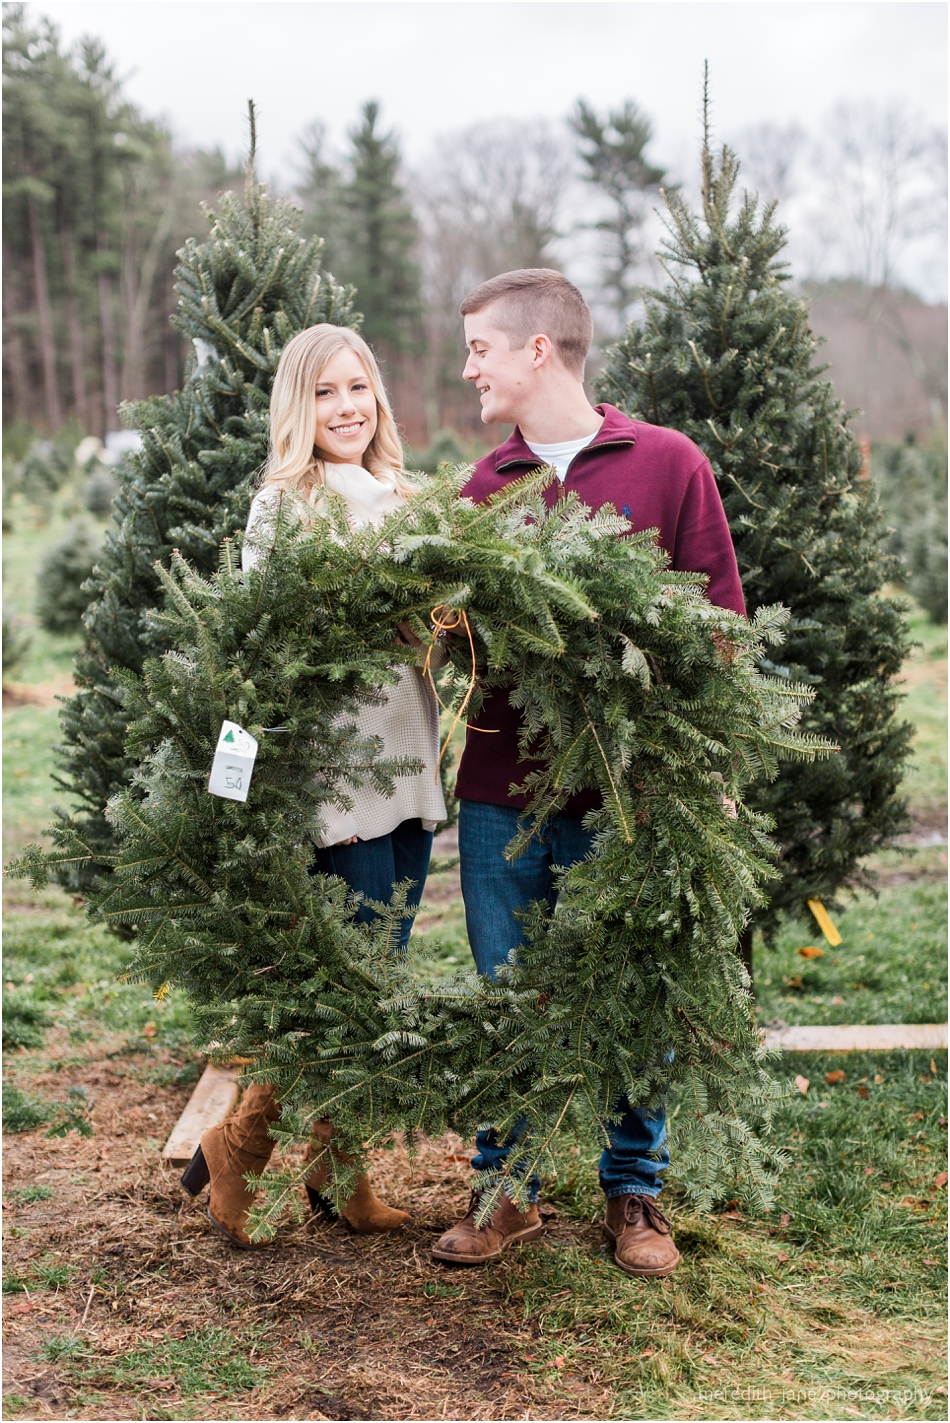 mistletoe_holiday_tree_farm_christmas_boston_massachusetts_engagement_fall_cape_cod_wedding_photographer_Meredith_Jane_Photography_photo_1005.jpg